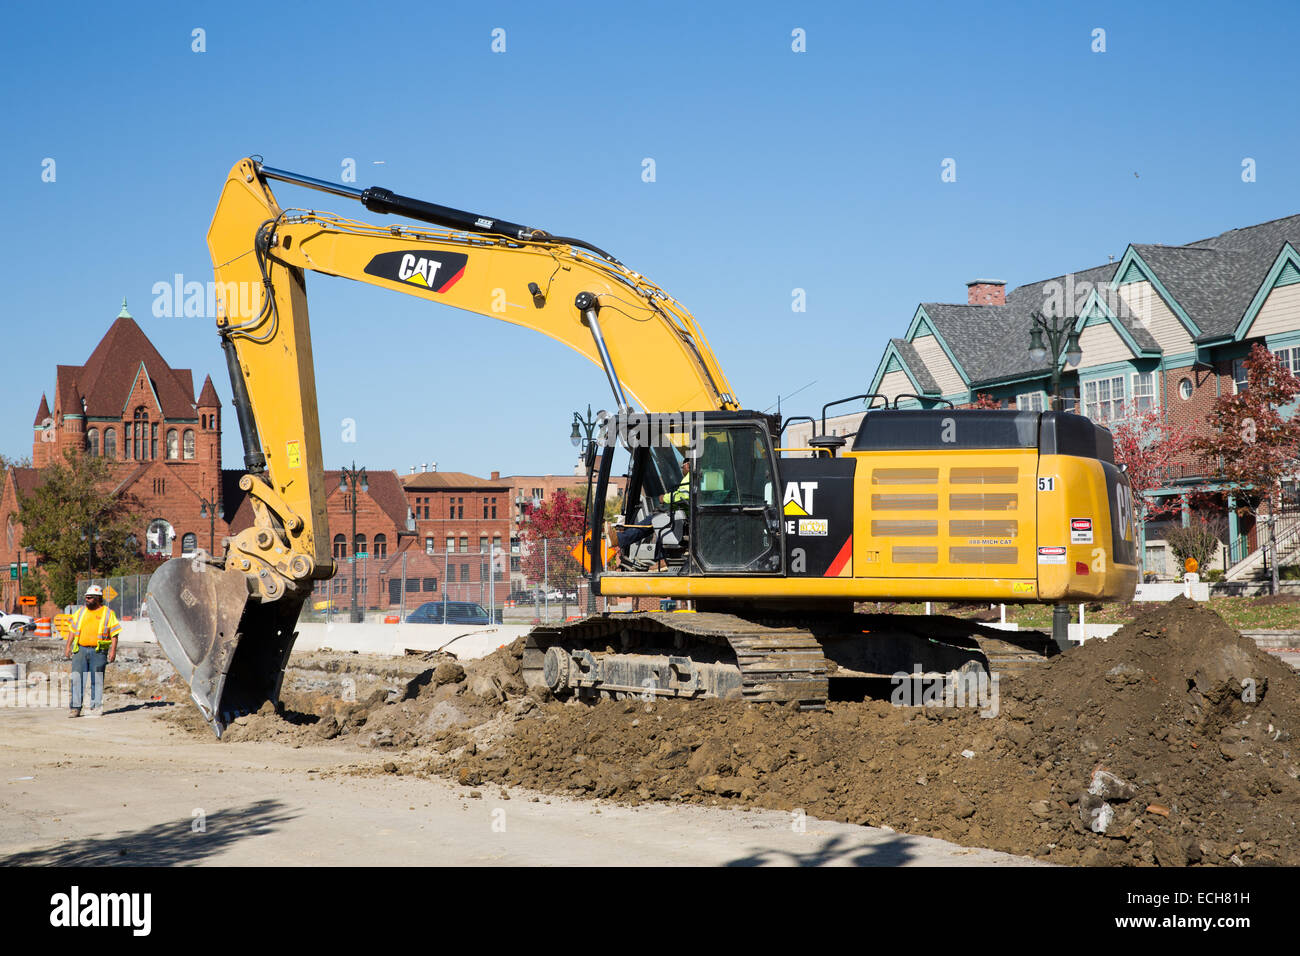 Caterpillar 349E L excavator on the M-1 Rail streetcar project, Detroit, MI, USA, Oct. 23, 2014. - Stock Image